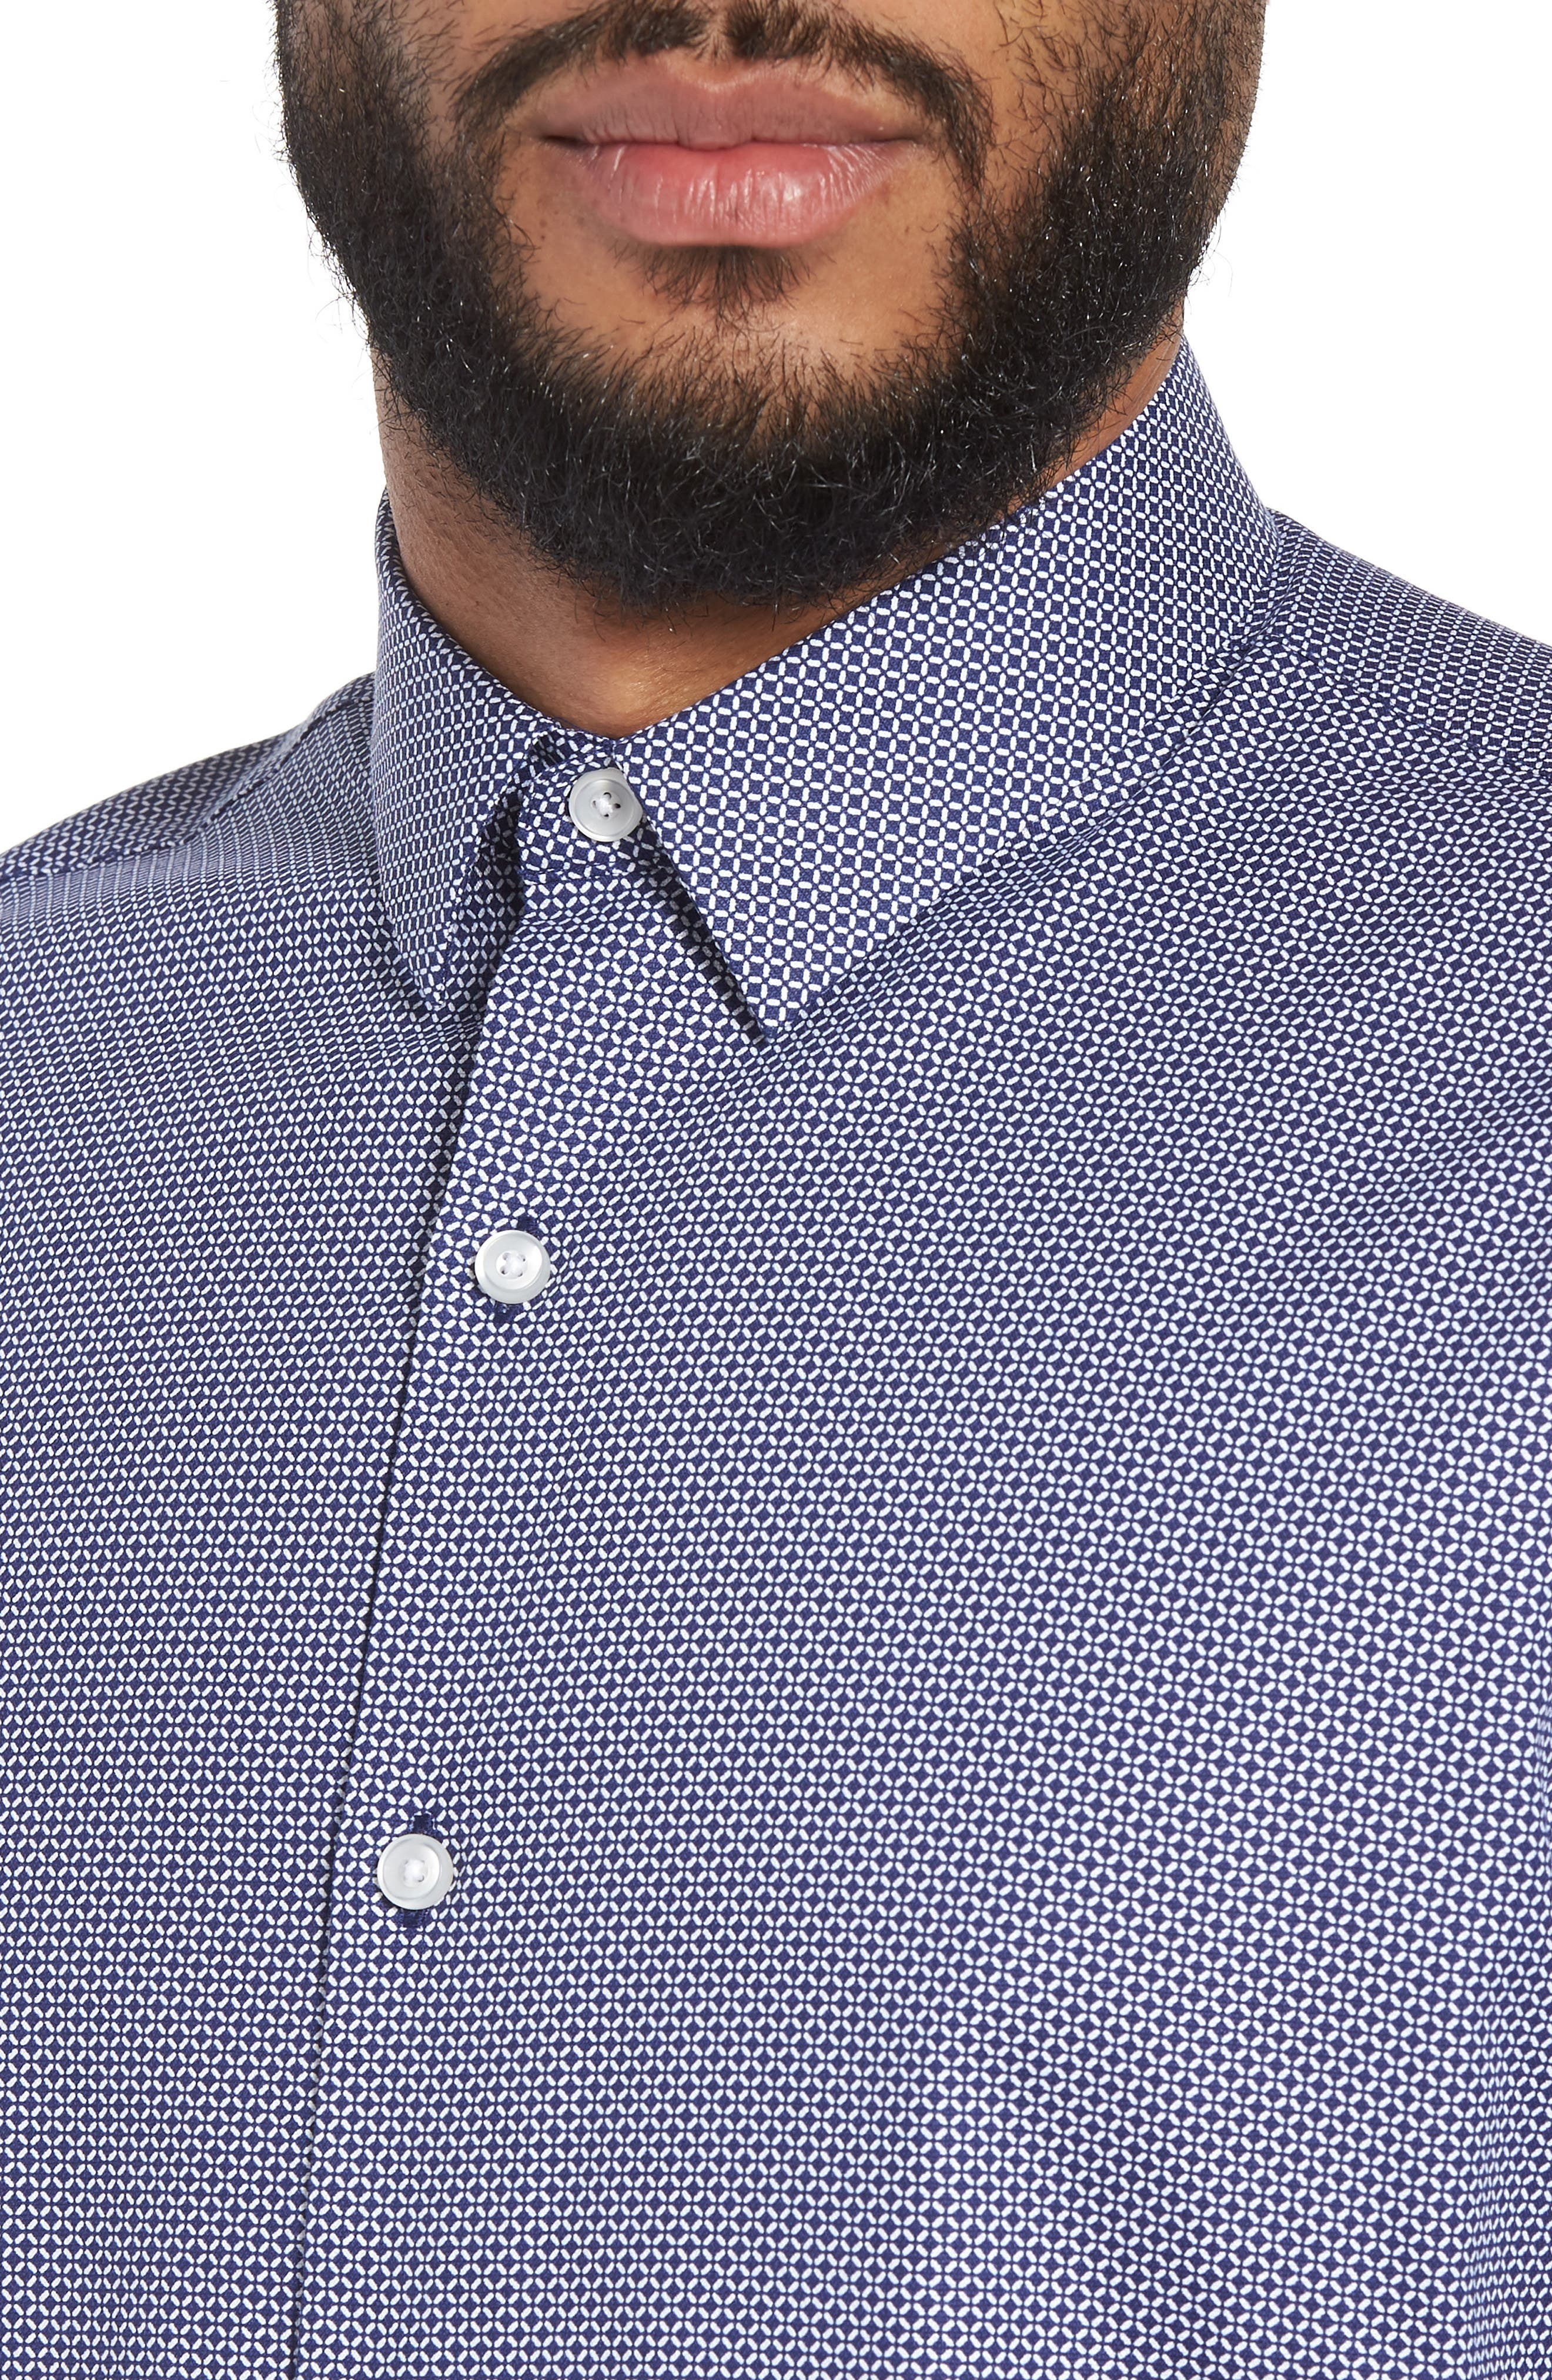 Trim Fit Micro Collar Sport Shirt,                             Alternate thumbnail 2, color,                             Navy White Geo